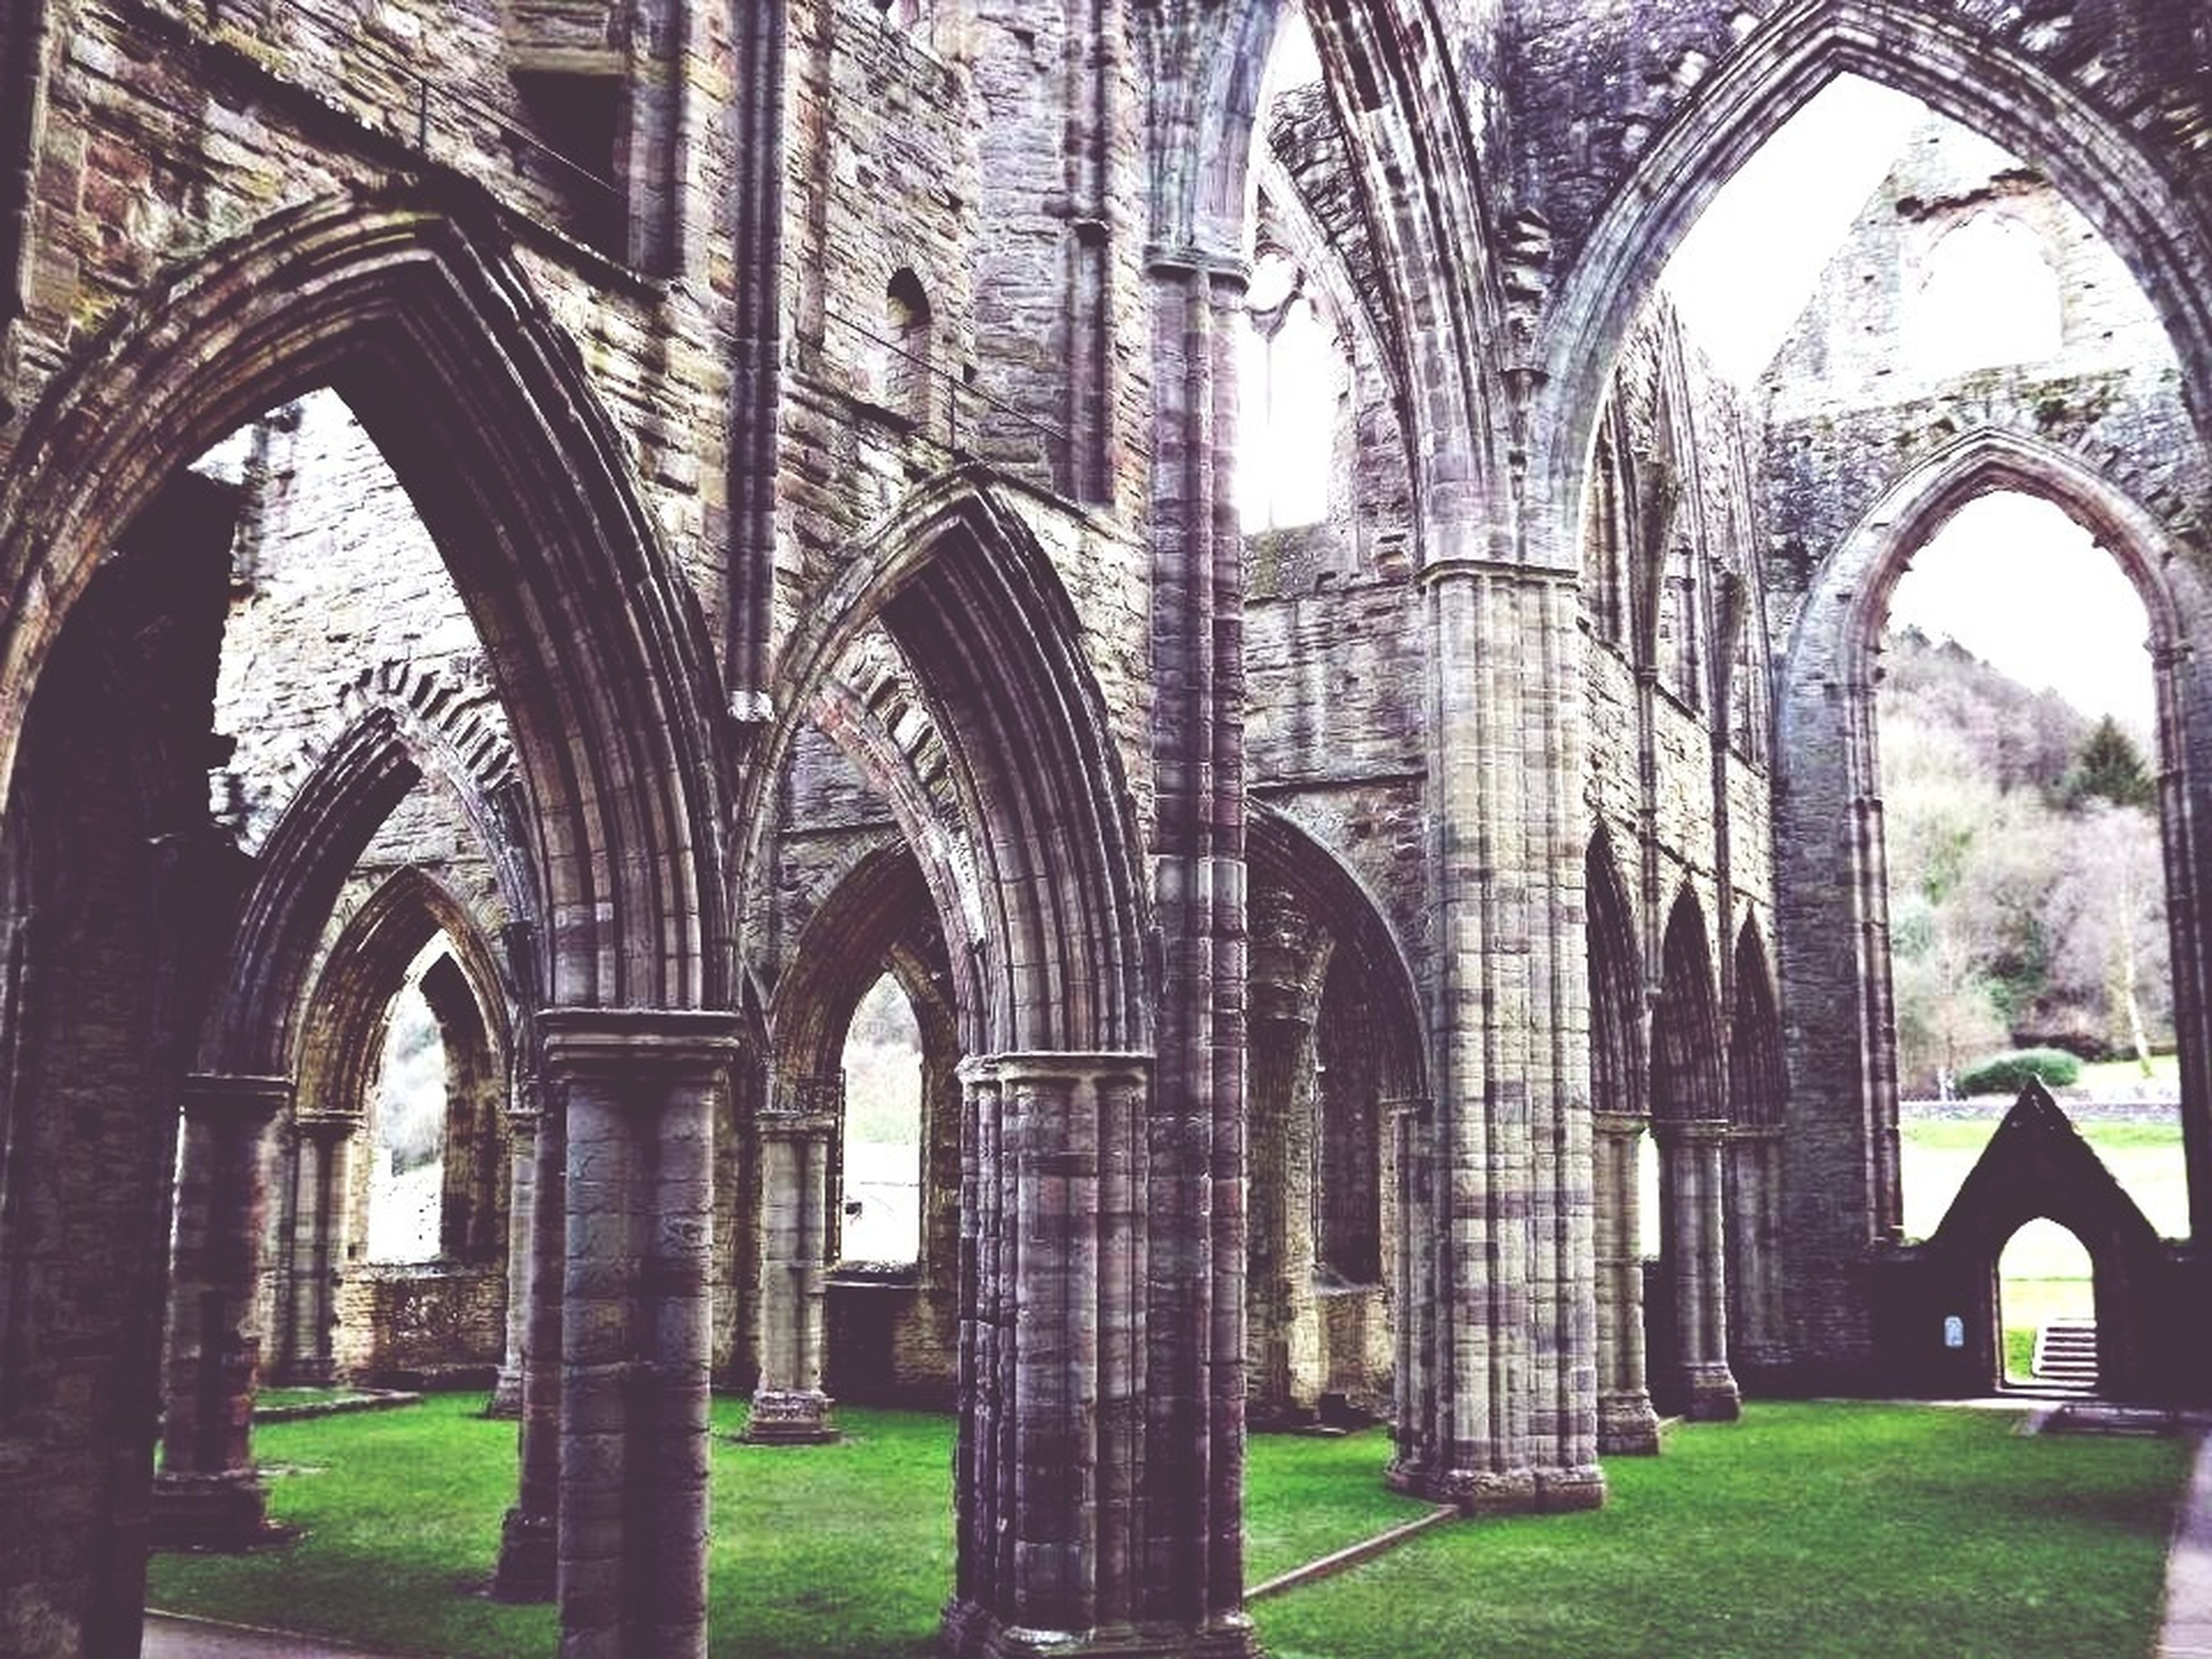 architecture, built structure, arch, building exterior, church, religion, place of worship, spirituality, window, history, old, grass, day, no people, cathedral, low angle view, outdoors, sky